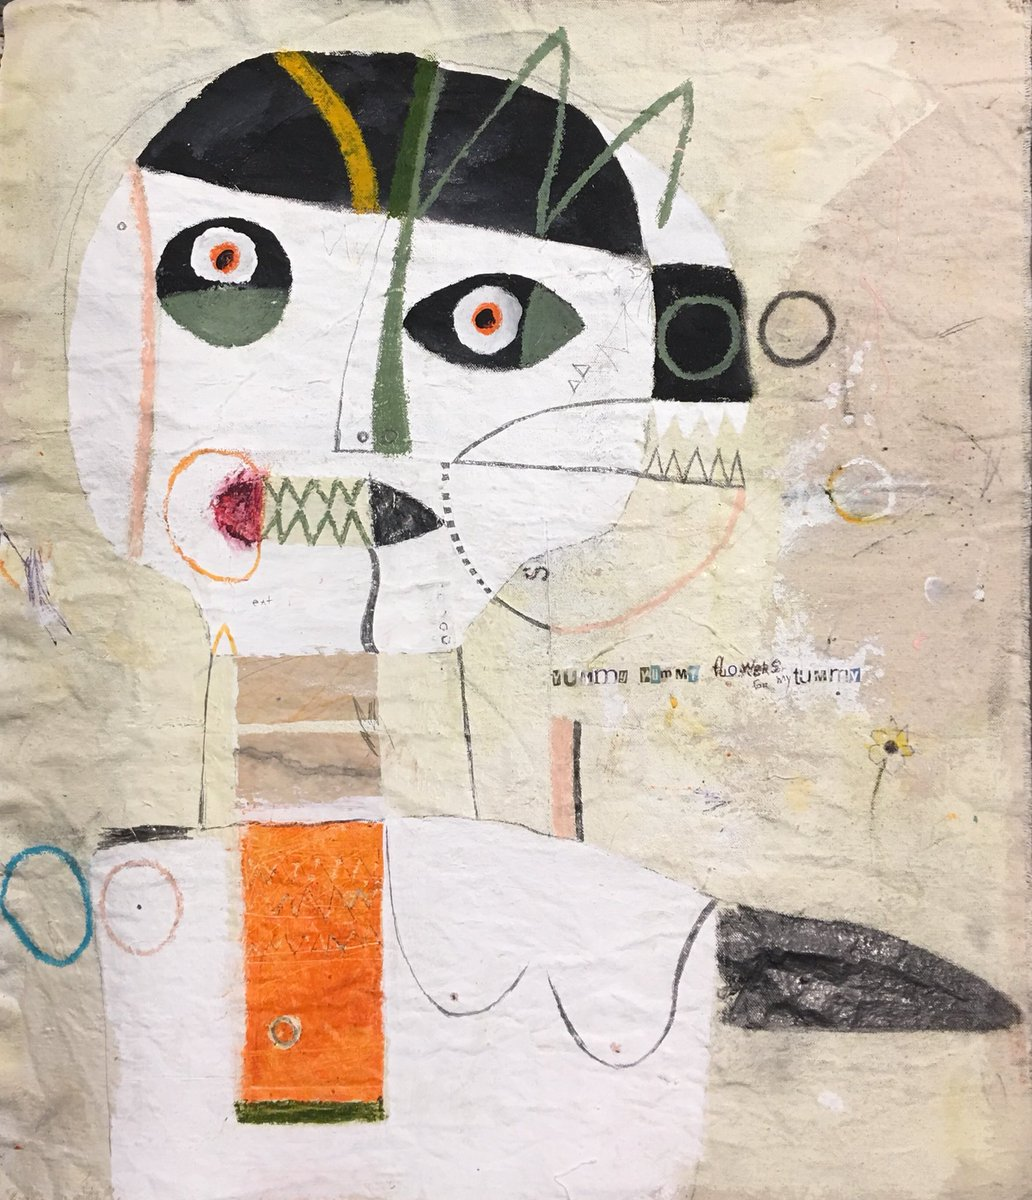 """""""She Would Eat Flowers Until She Puked...I Found That Odd."""" Purchasing one of my works is like throwing caution to the wind. Mixedmedia on unstretched canvas. #artgallery #design #Collage #Abstract #interiordesign #paintings #homedecor #artwork<br>http://pic.twitter.com/fUfDGMcb7B"""